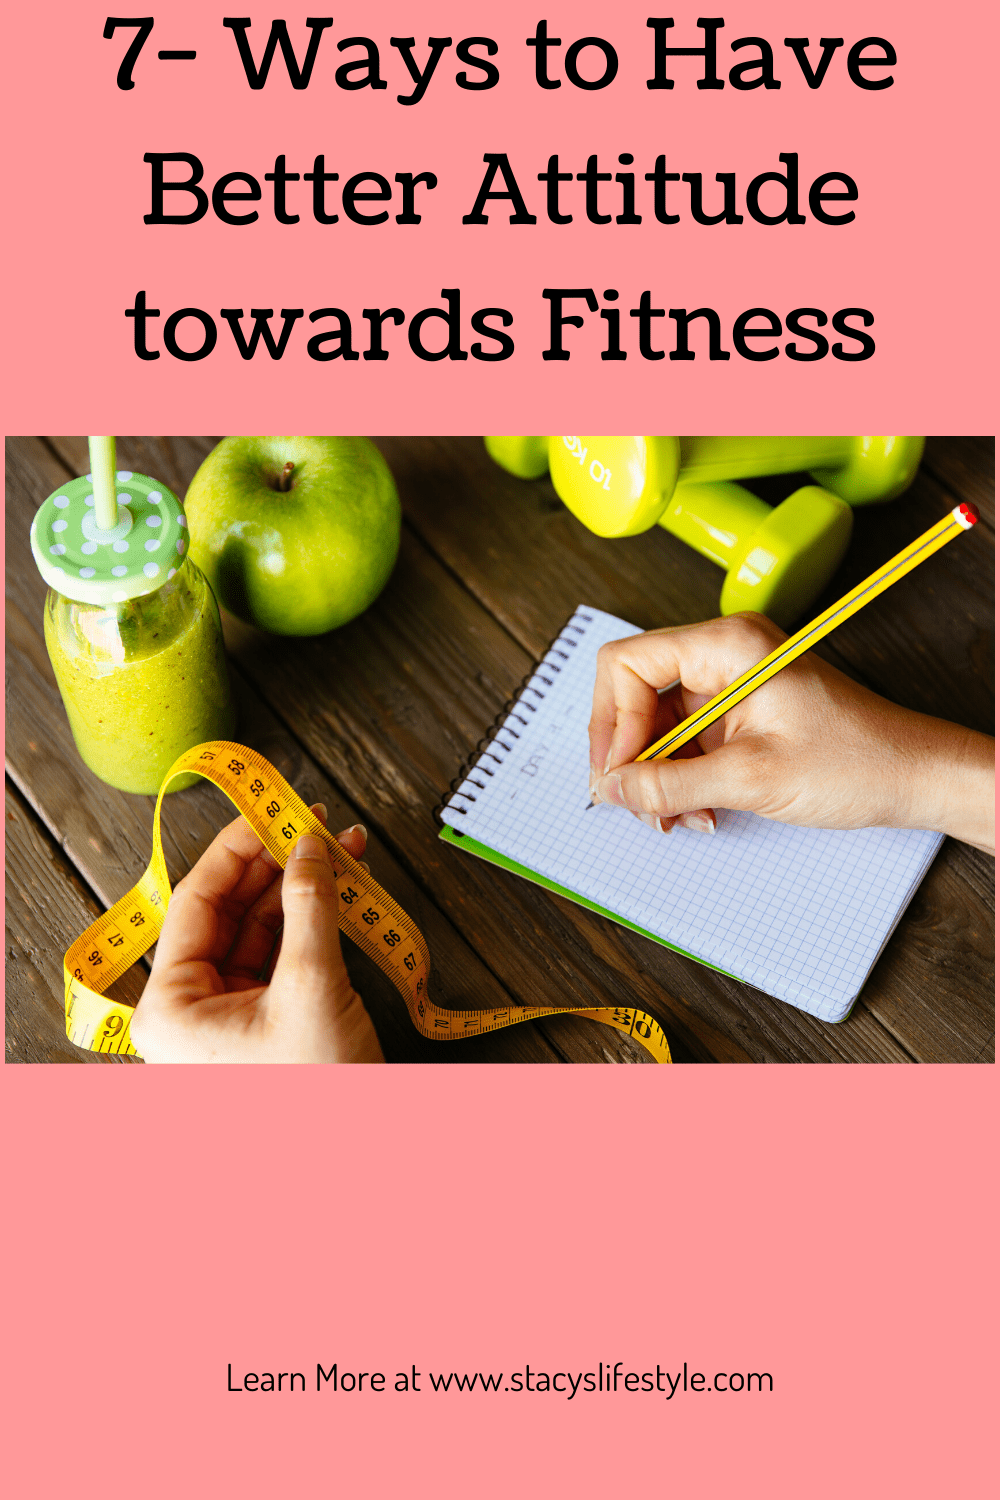 7- Ways to Have Better Attitude towards Fitness